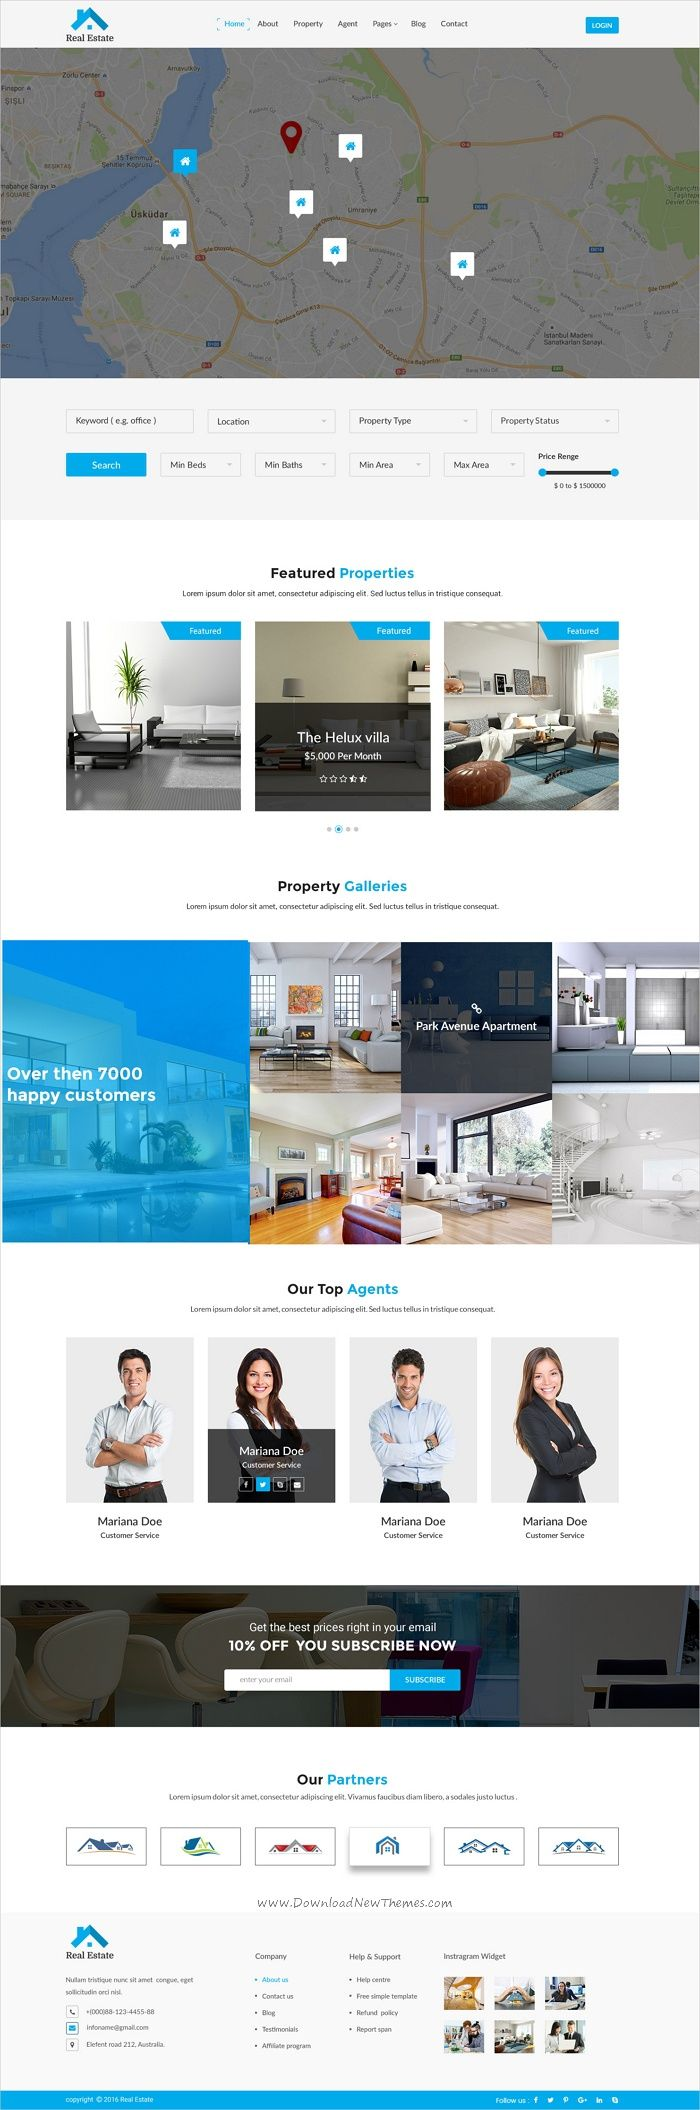 Real Estate Psd Template Real Estate Website Design Real Estate Website Templates Real Estate Templates